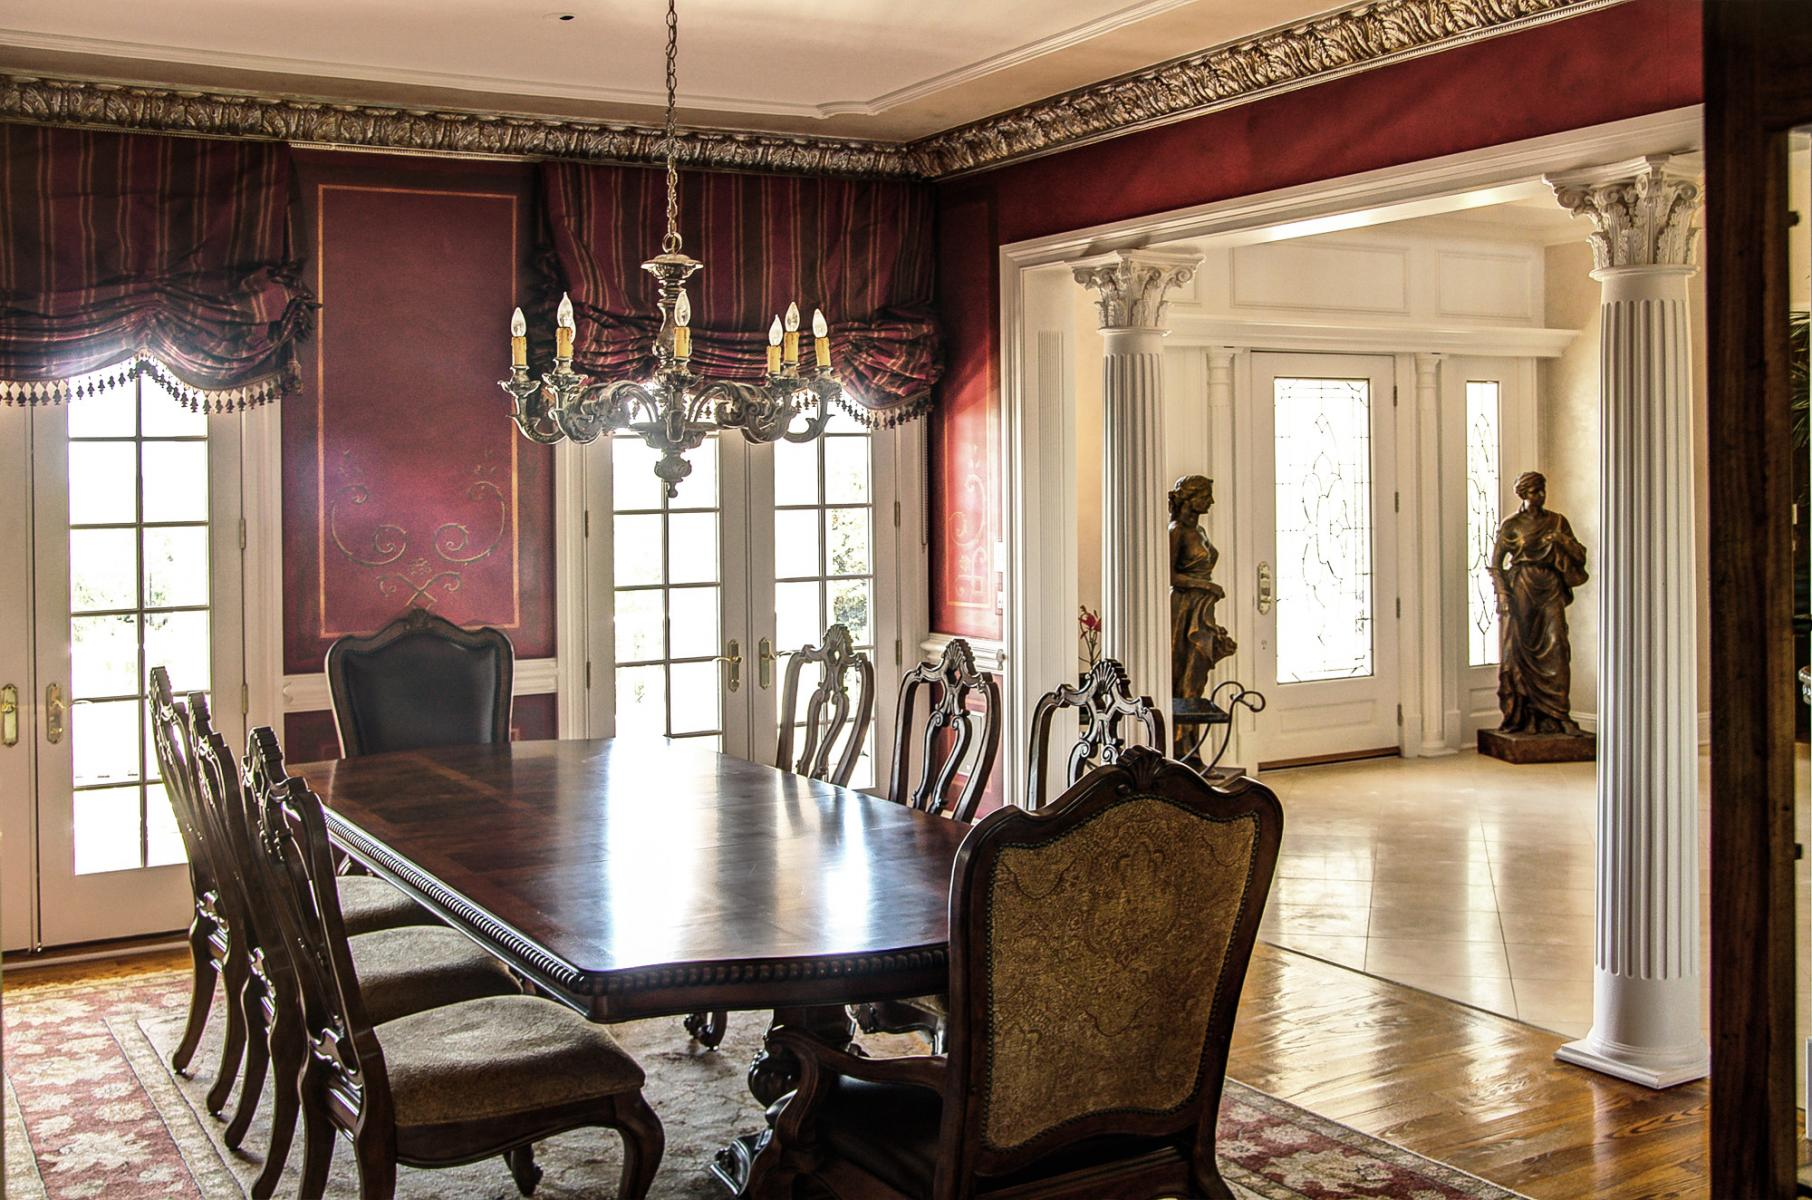 Stencil designs over wine colored walls with a faux metal plaster cornice and chandelier topped with an accented ceiling. Stunning!